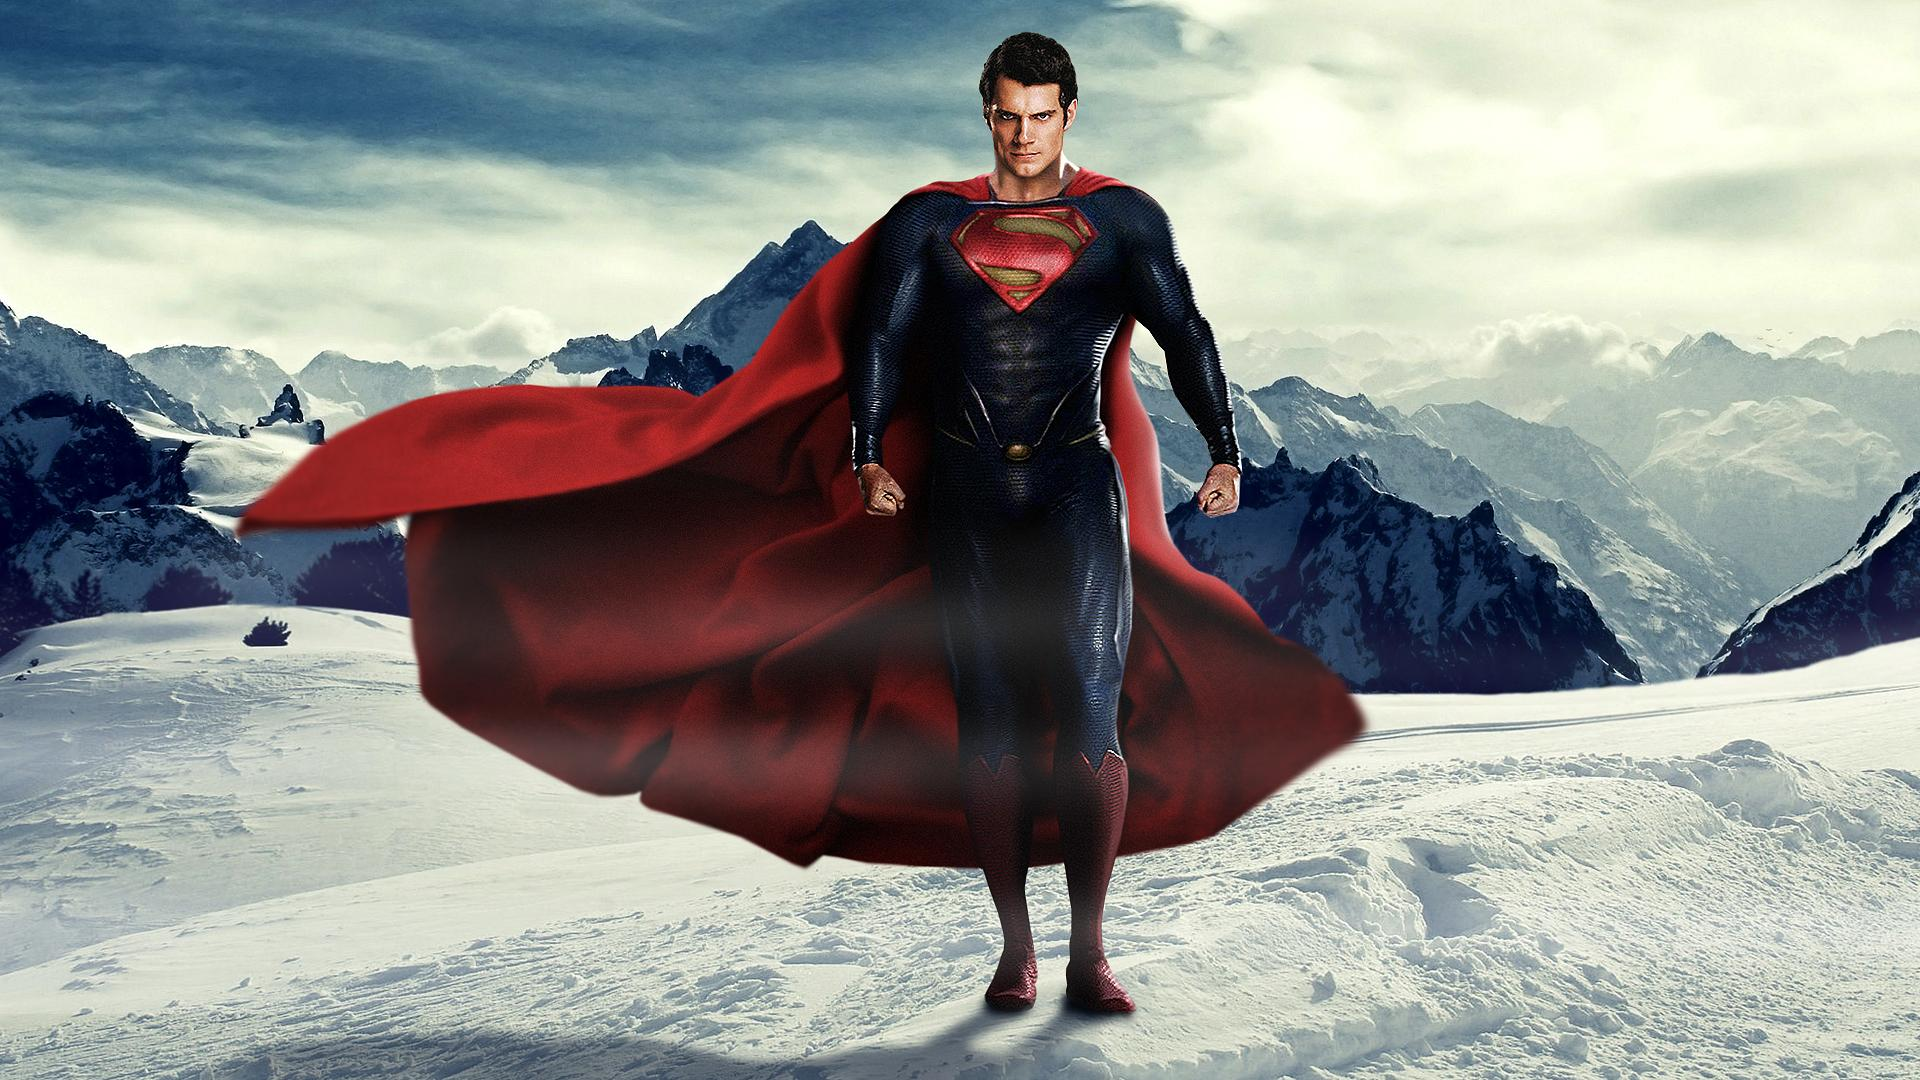 Superman Hd Wallpapers For Android Apk Download